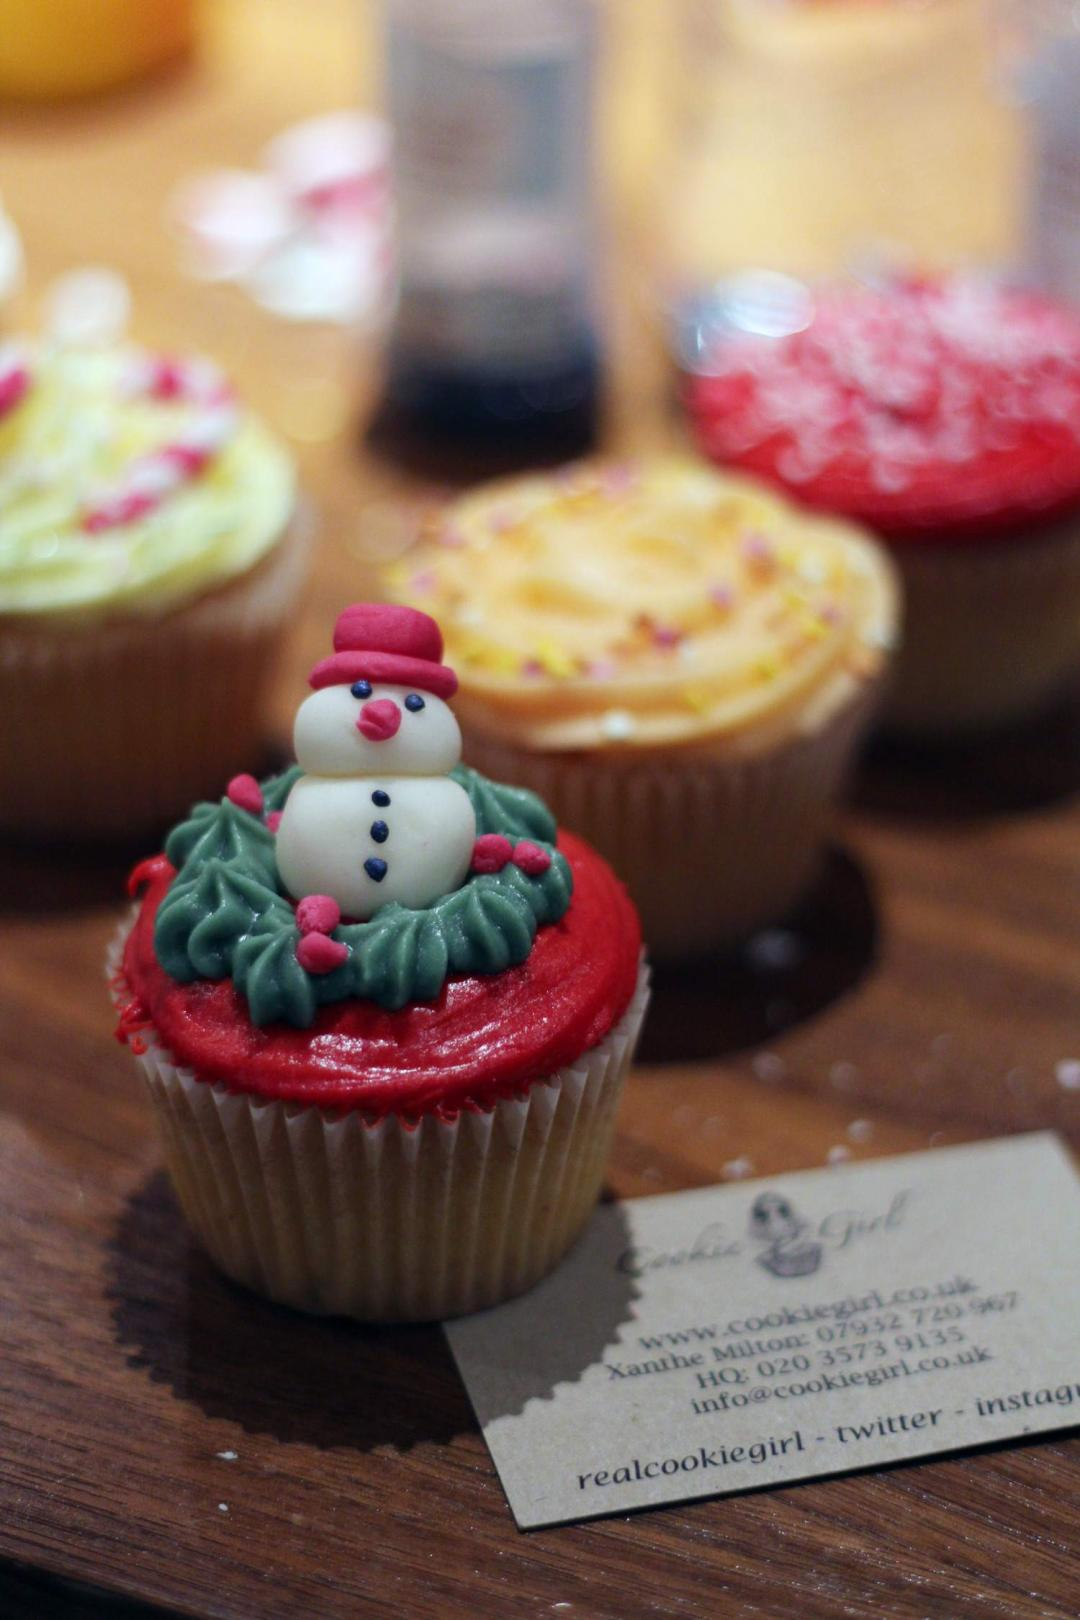 citizen-m-bankside-bloggers-christmas-event-cookie-girl-cupcake-decorating-london-11